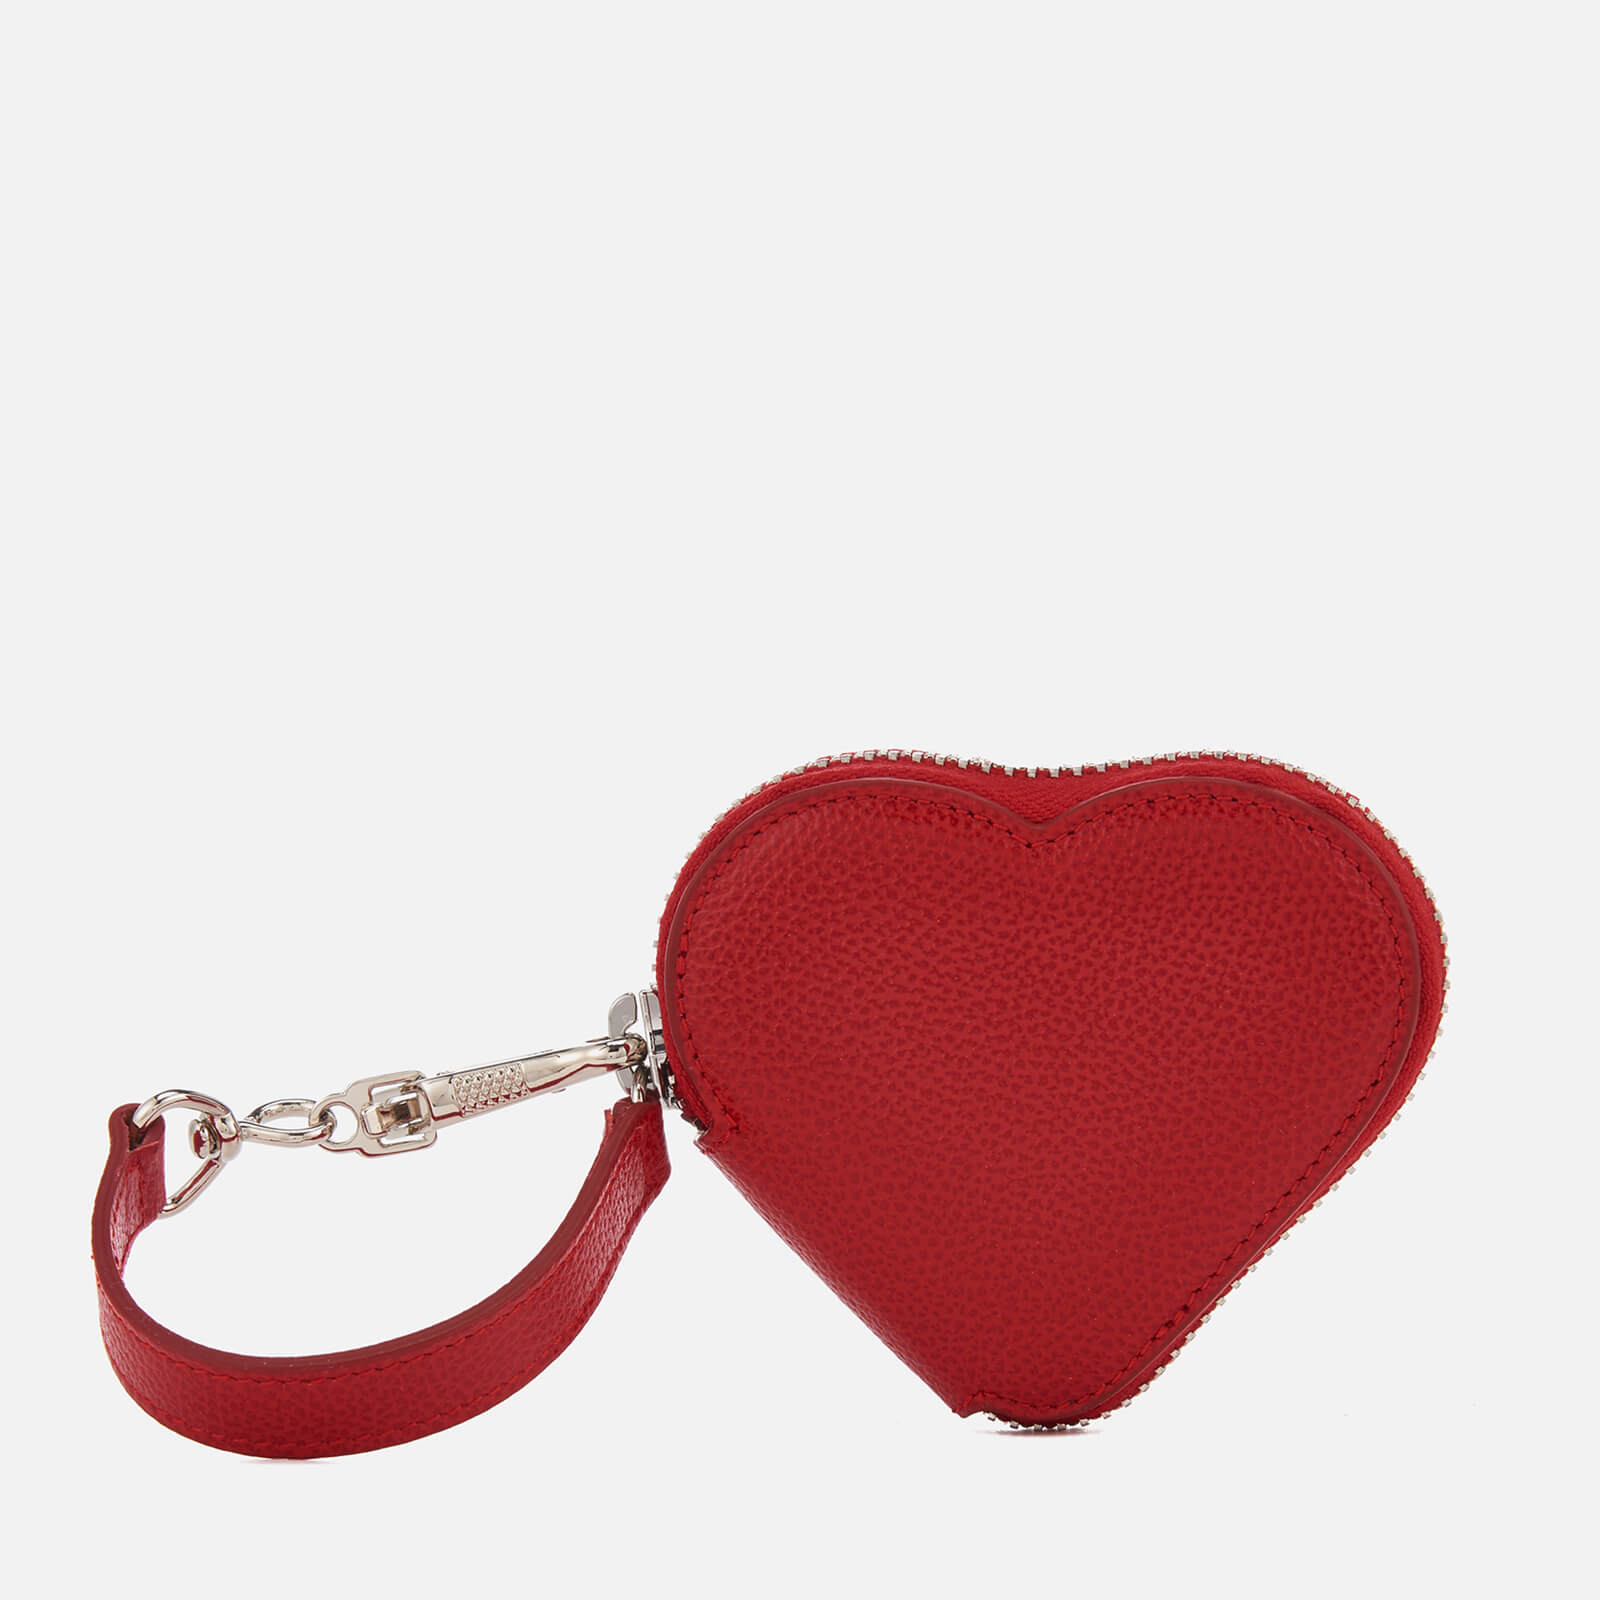 89f0ba054d Vivienne Westwood Women's Johanna Heart Coin Case - Red - Free UK Delivery  over £50